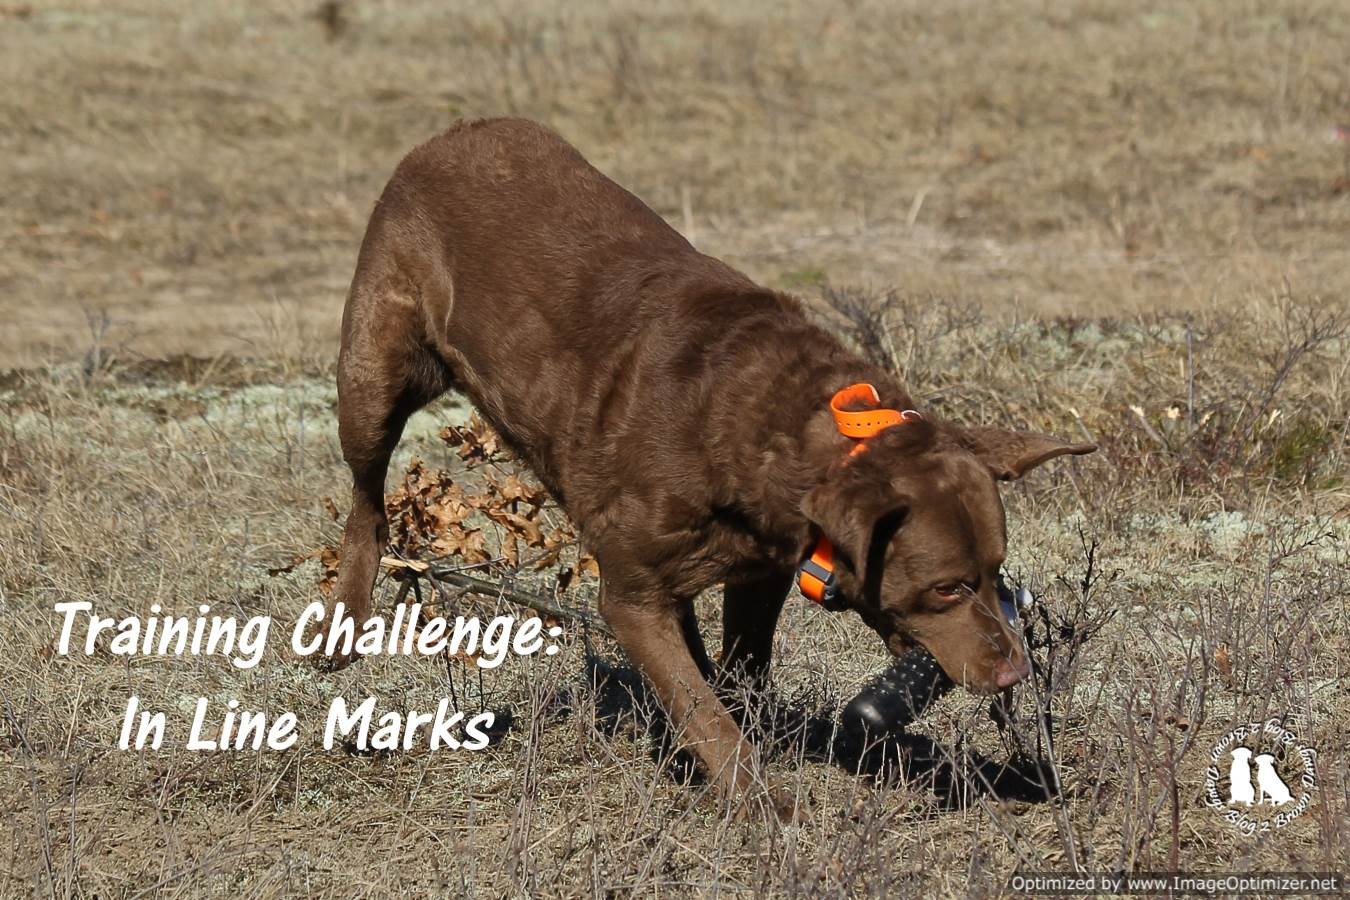 Training Challenges: In Line Marks